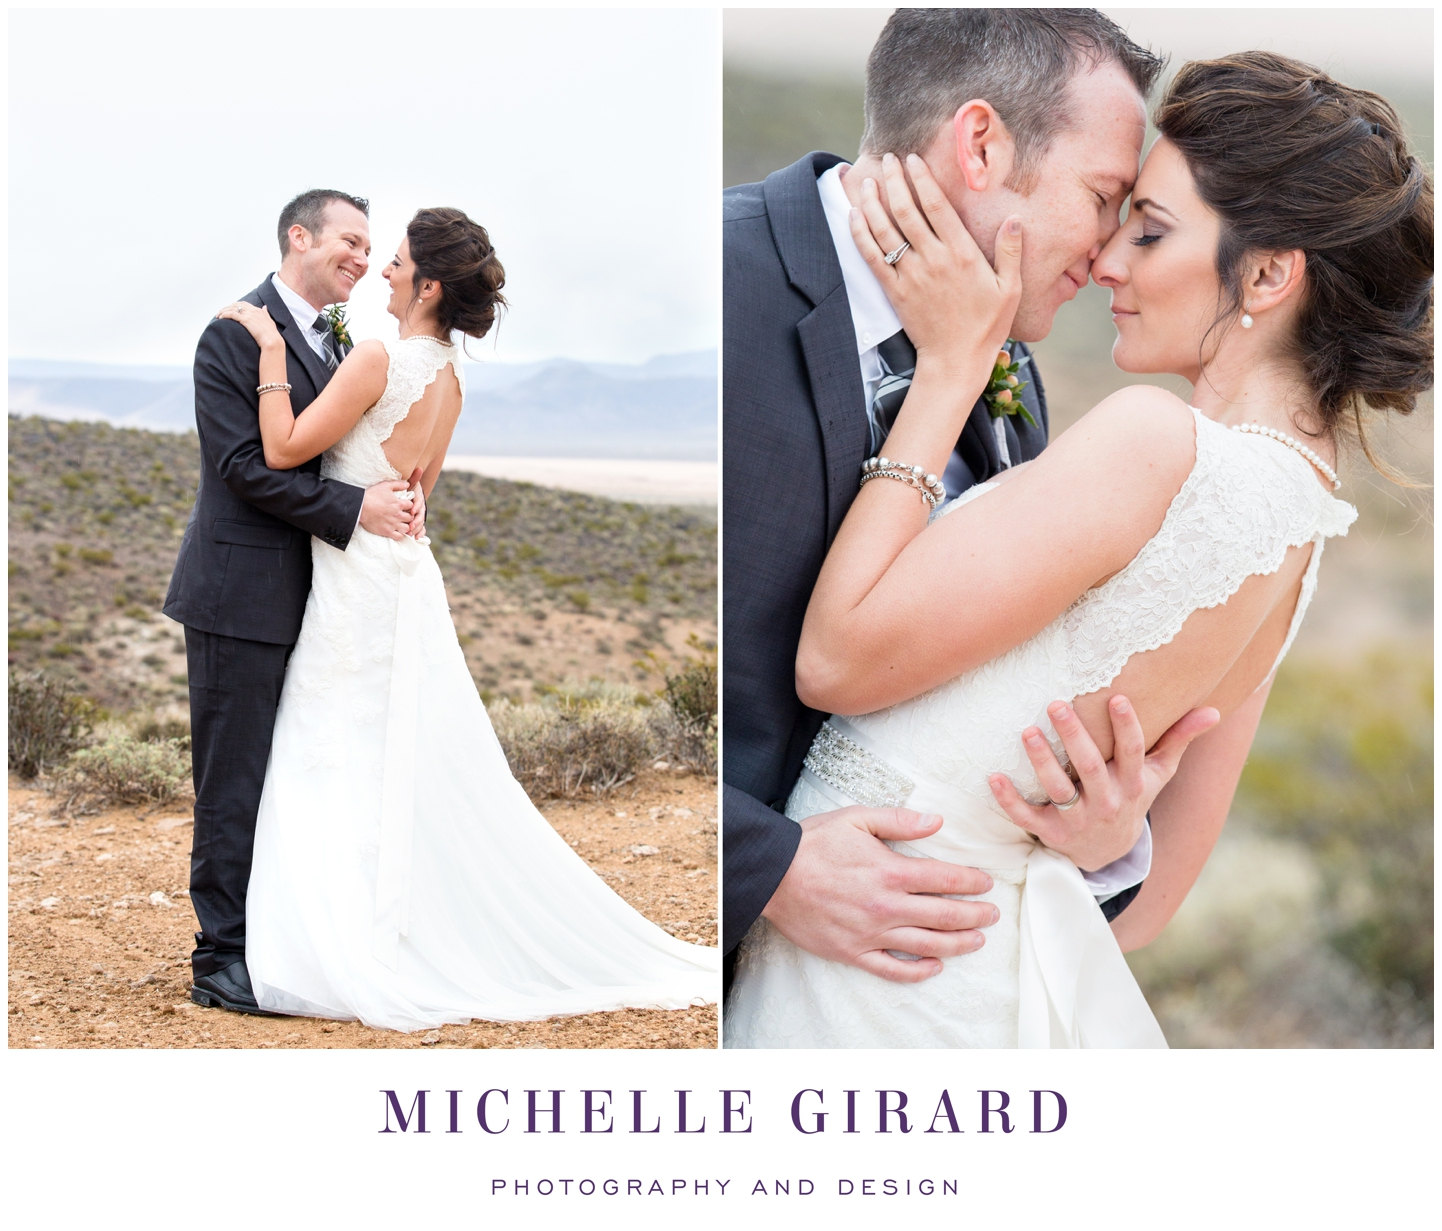 las-vegas-desert-wedding-bride-groom-photography-nevada-michelle-girard-01.jpg